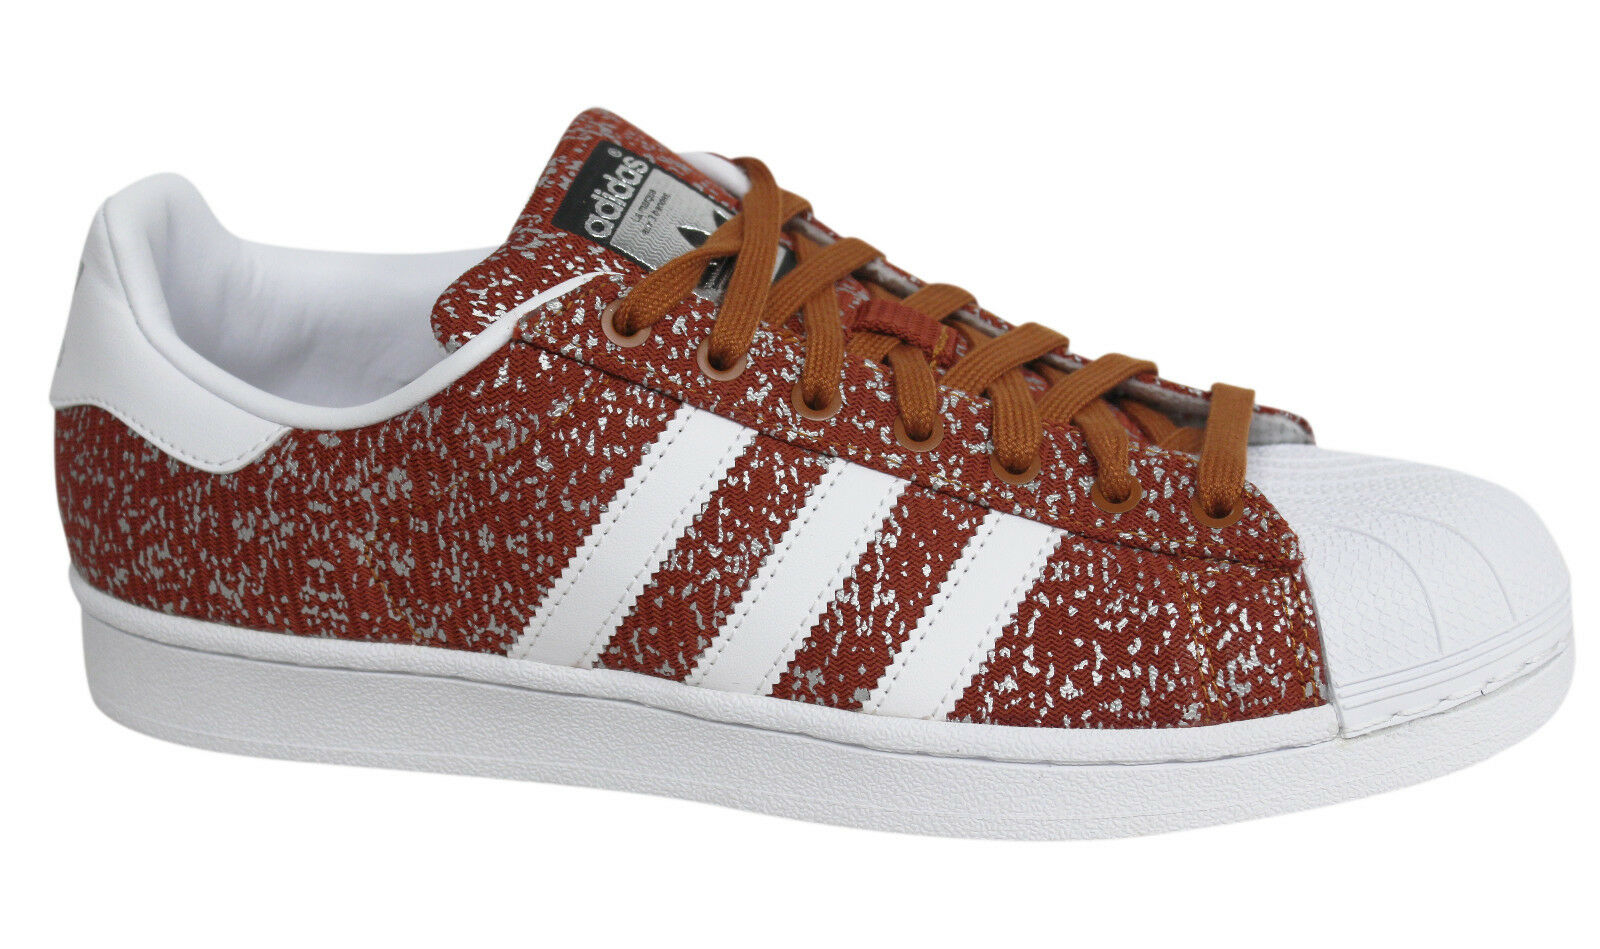 Adidas Originals Superstar Lace Up Uomo Fox ROT Synthetic  Uomo Up Trainers S85981 M8 e6a05d